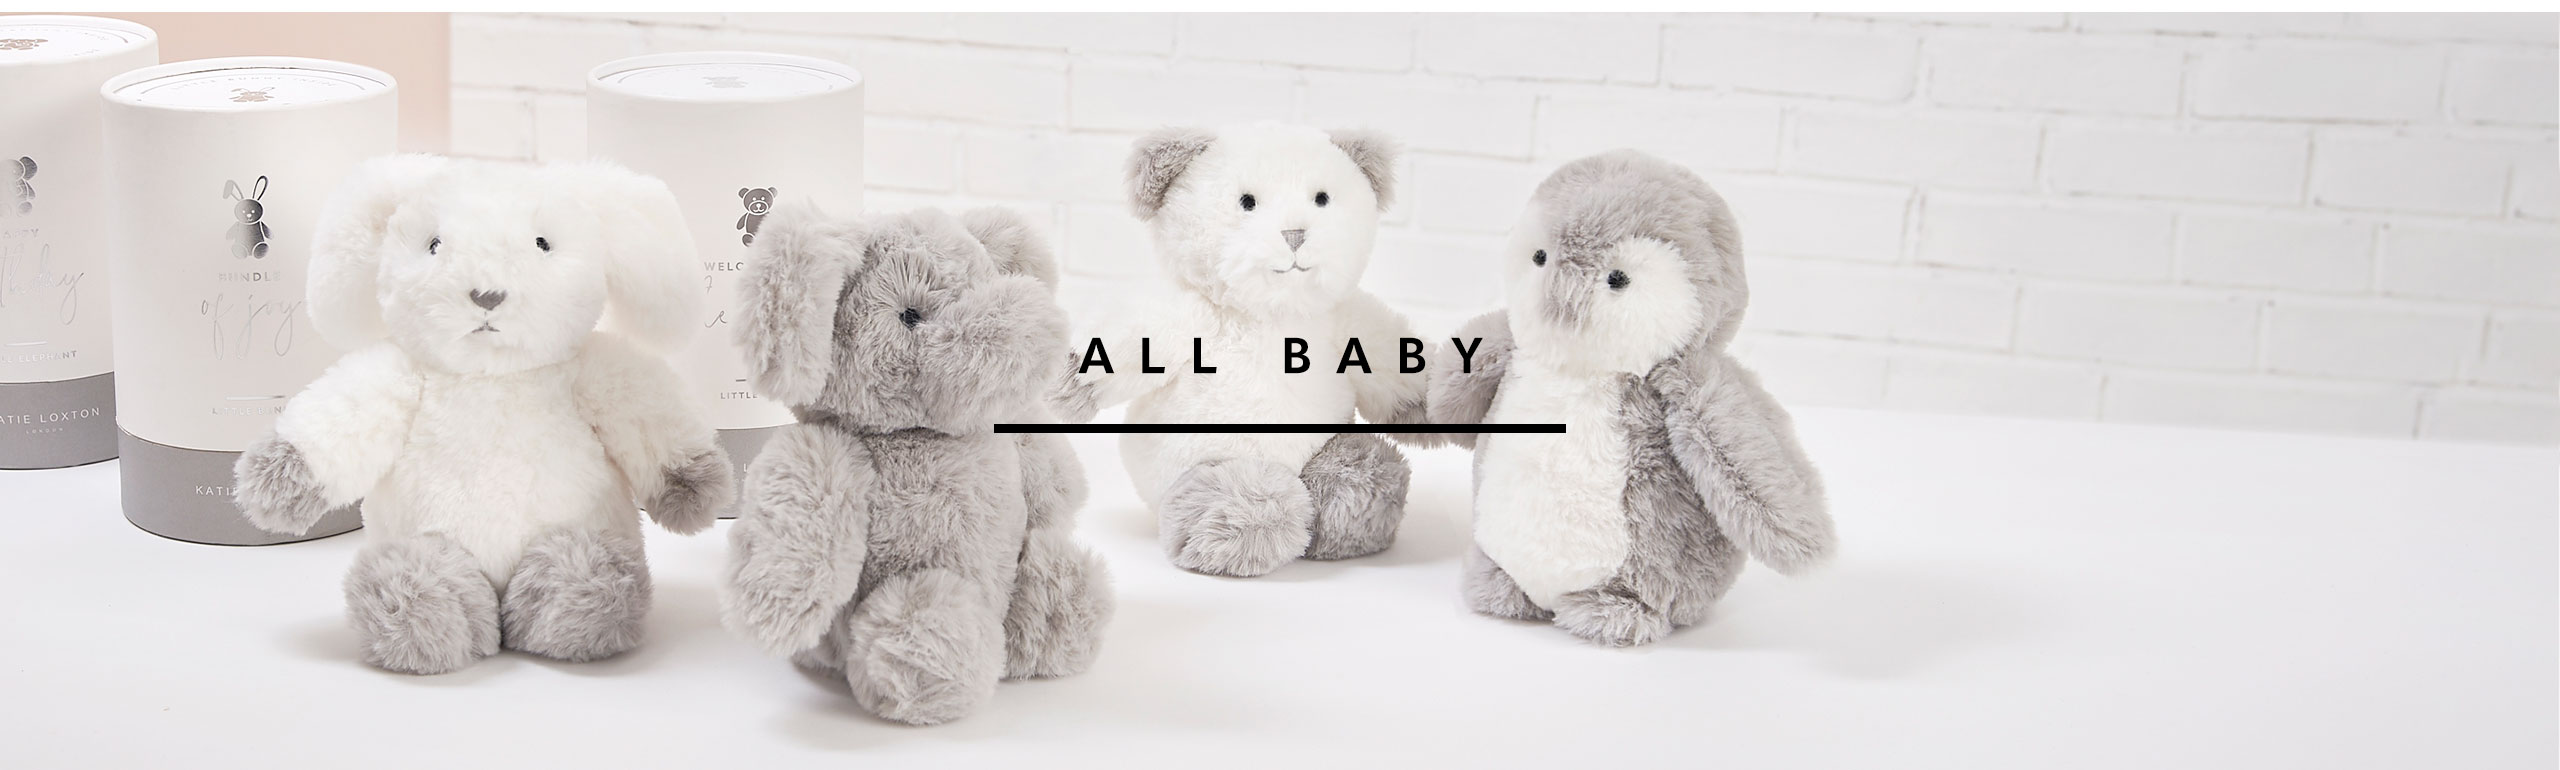 All Baby